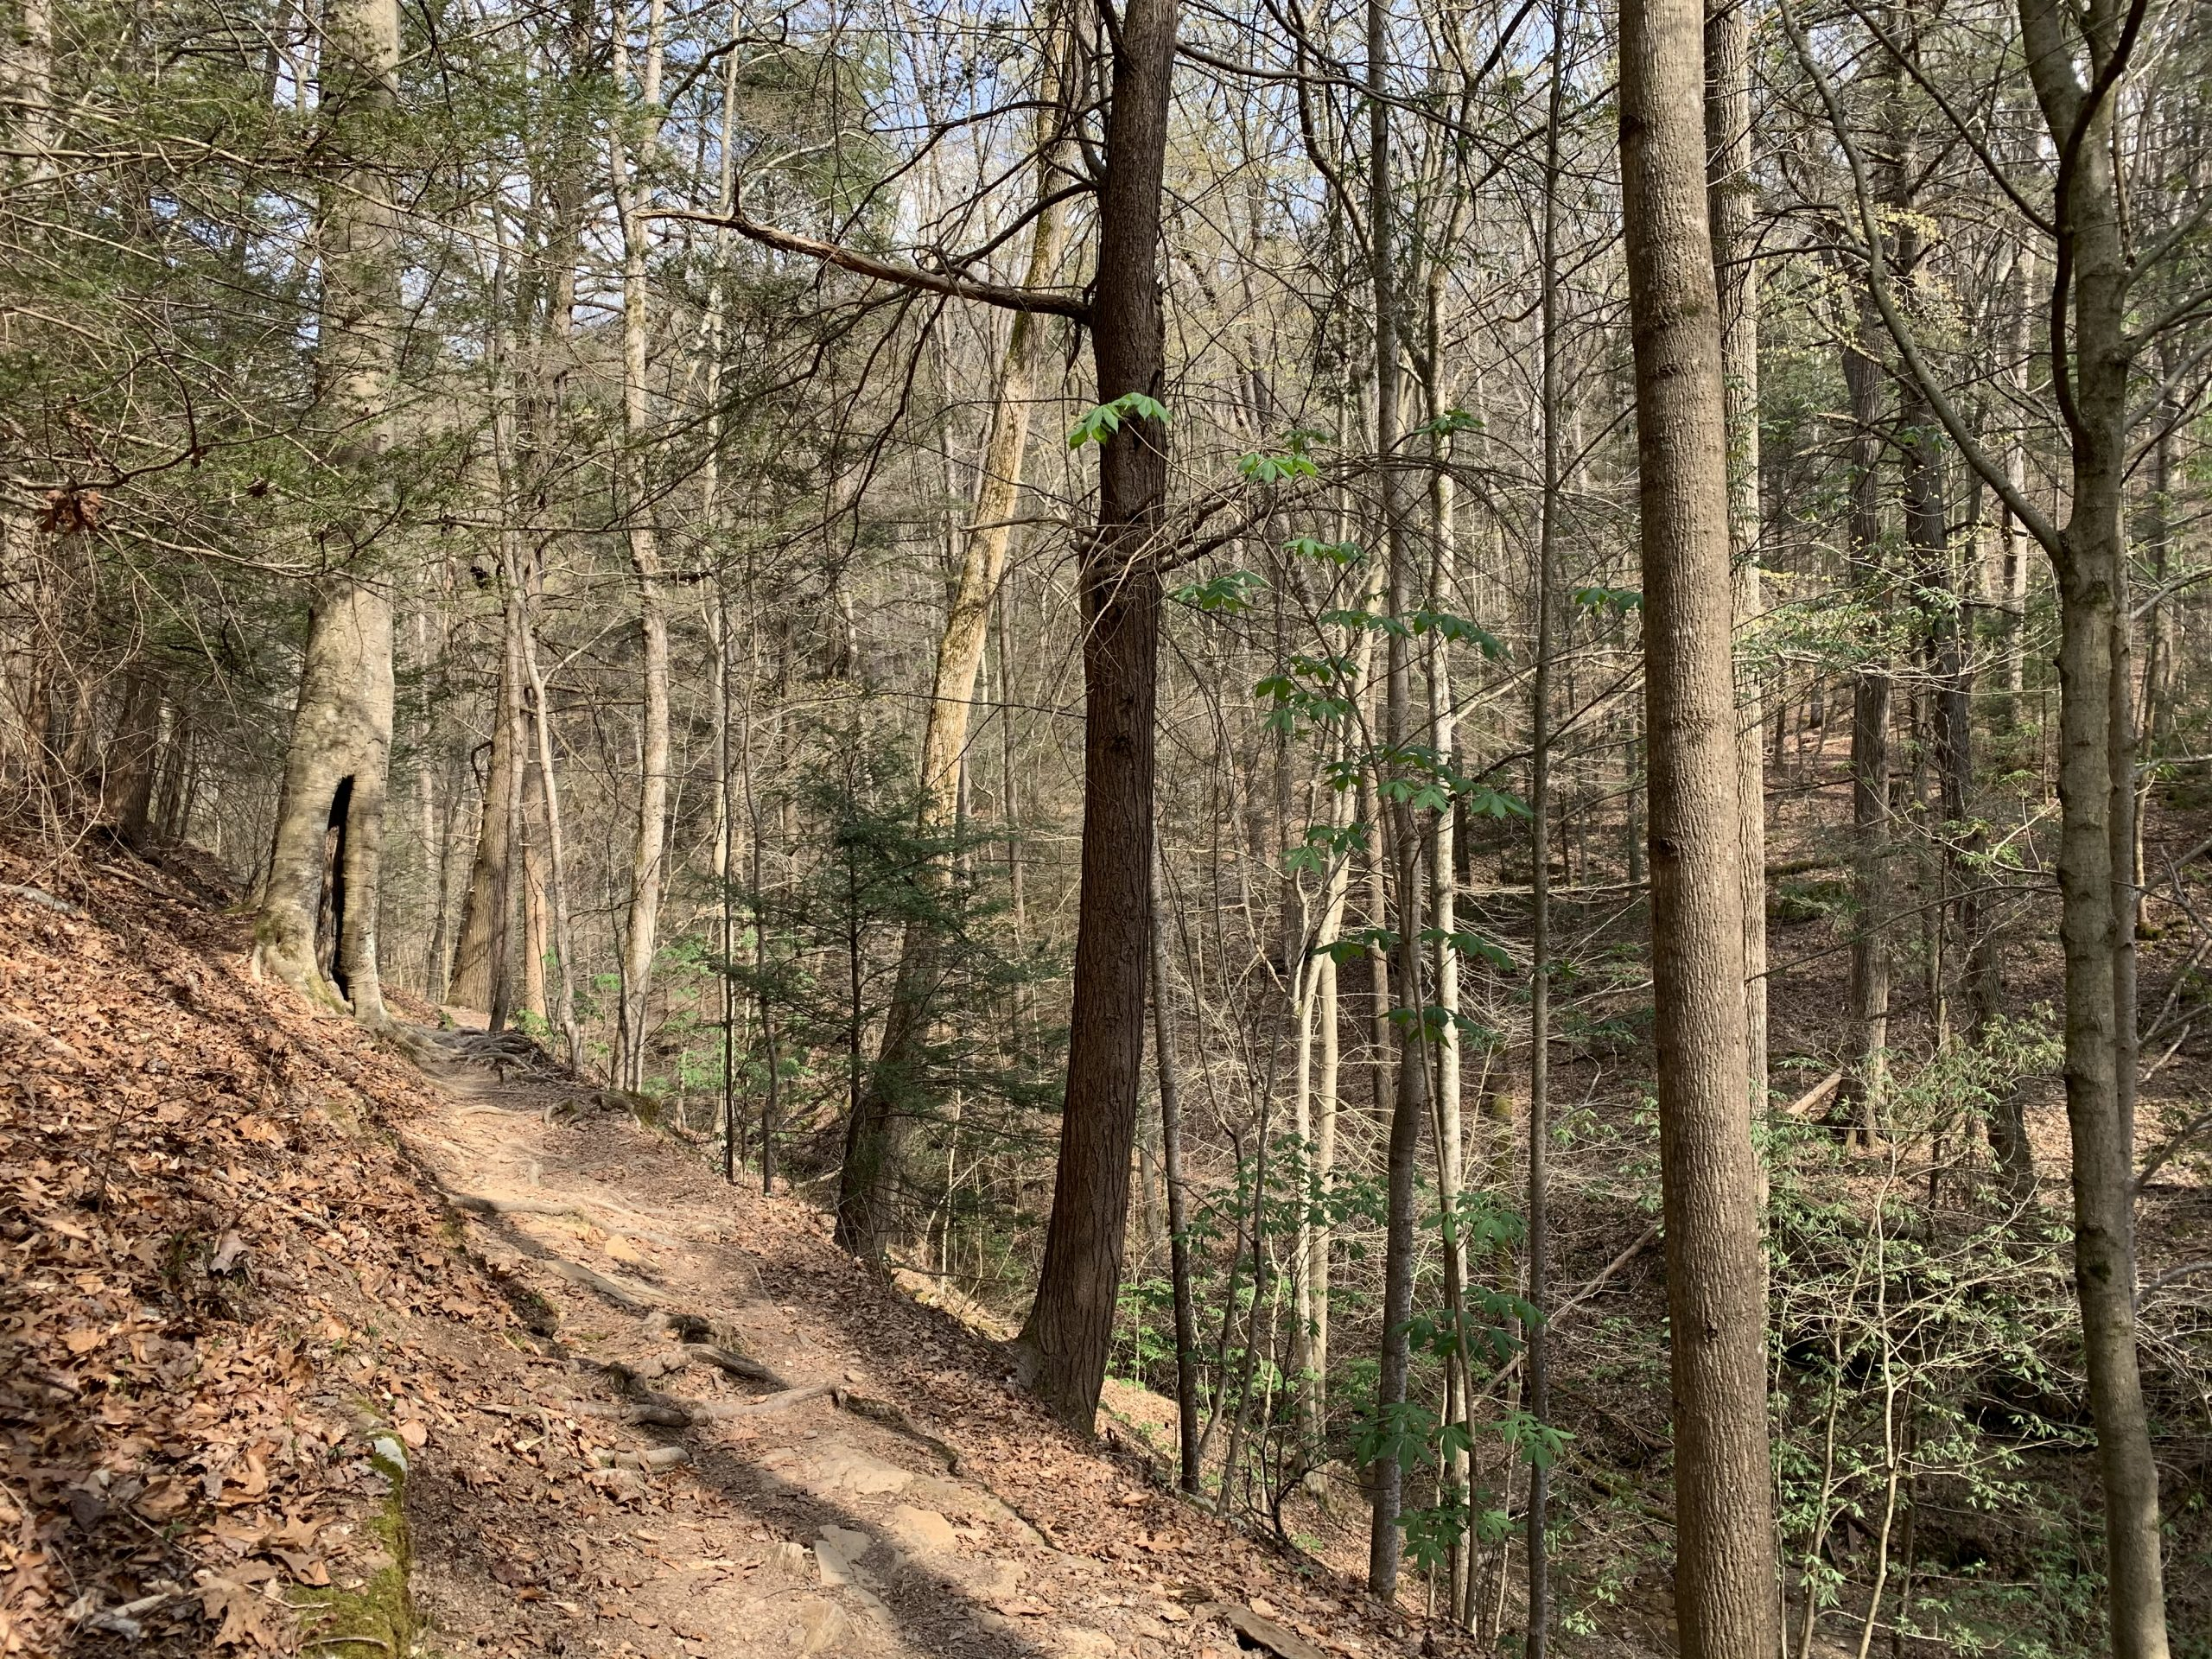 On sunny days, the natural light casts through the tall hickory trees that line the Alice Knight Memorial Trail. ALL PHOTOS BY AMANDA BARBER